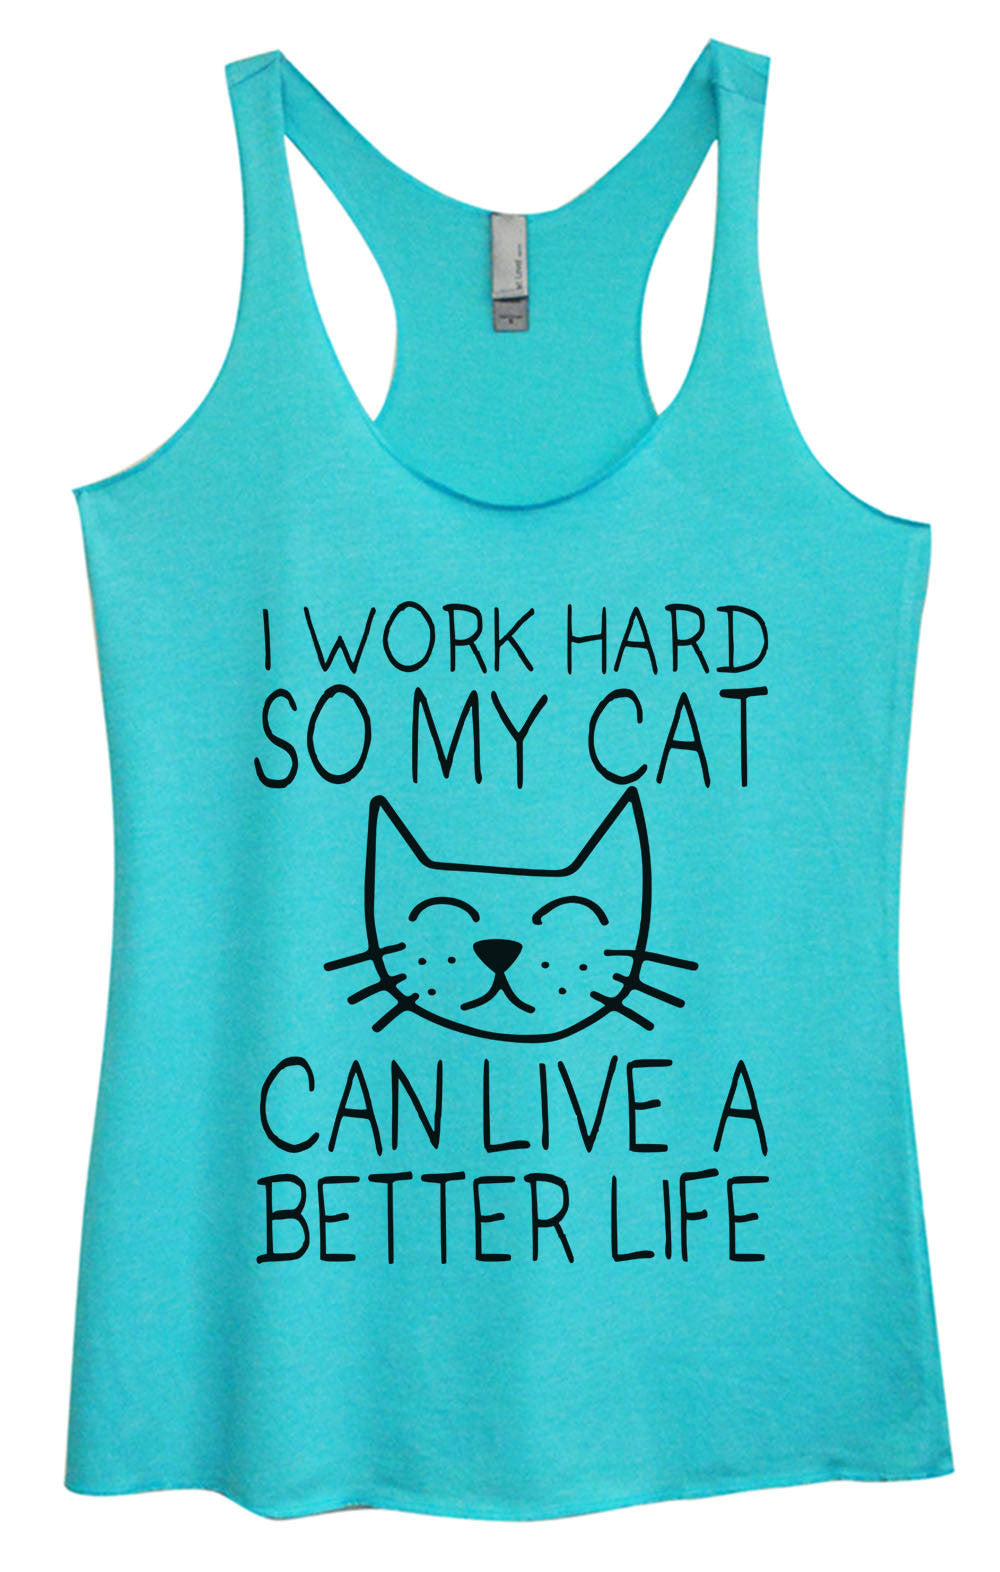 Womens Fashion Triblend Tank Top - I Work Hard So My Cat Can Live A Better Life - Tri-990 - Funny Shirts Tank Tops Burnouts and Triblends  - 4